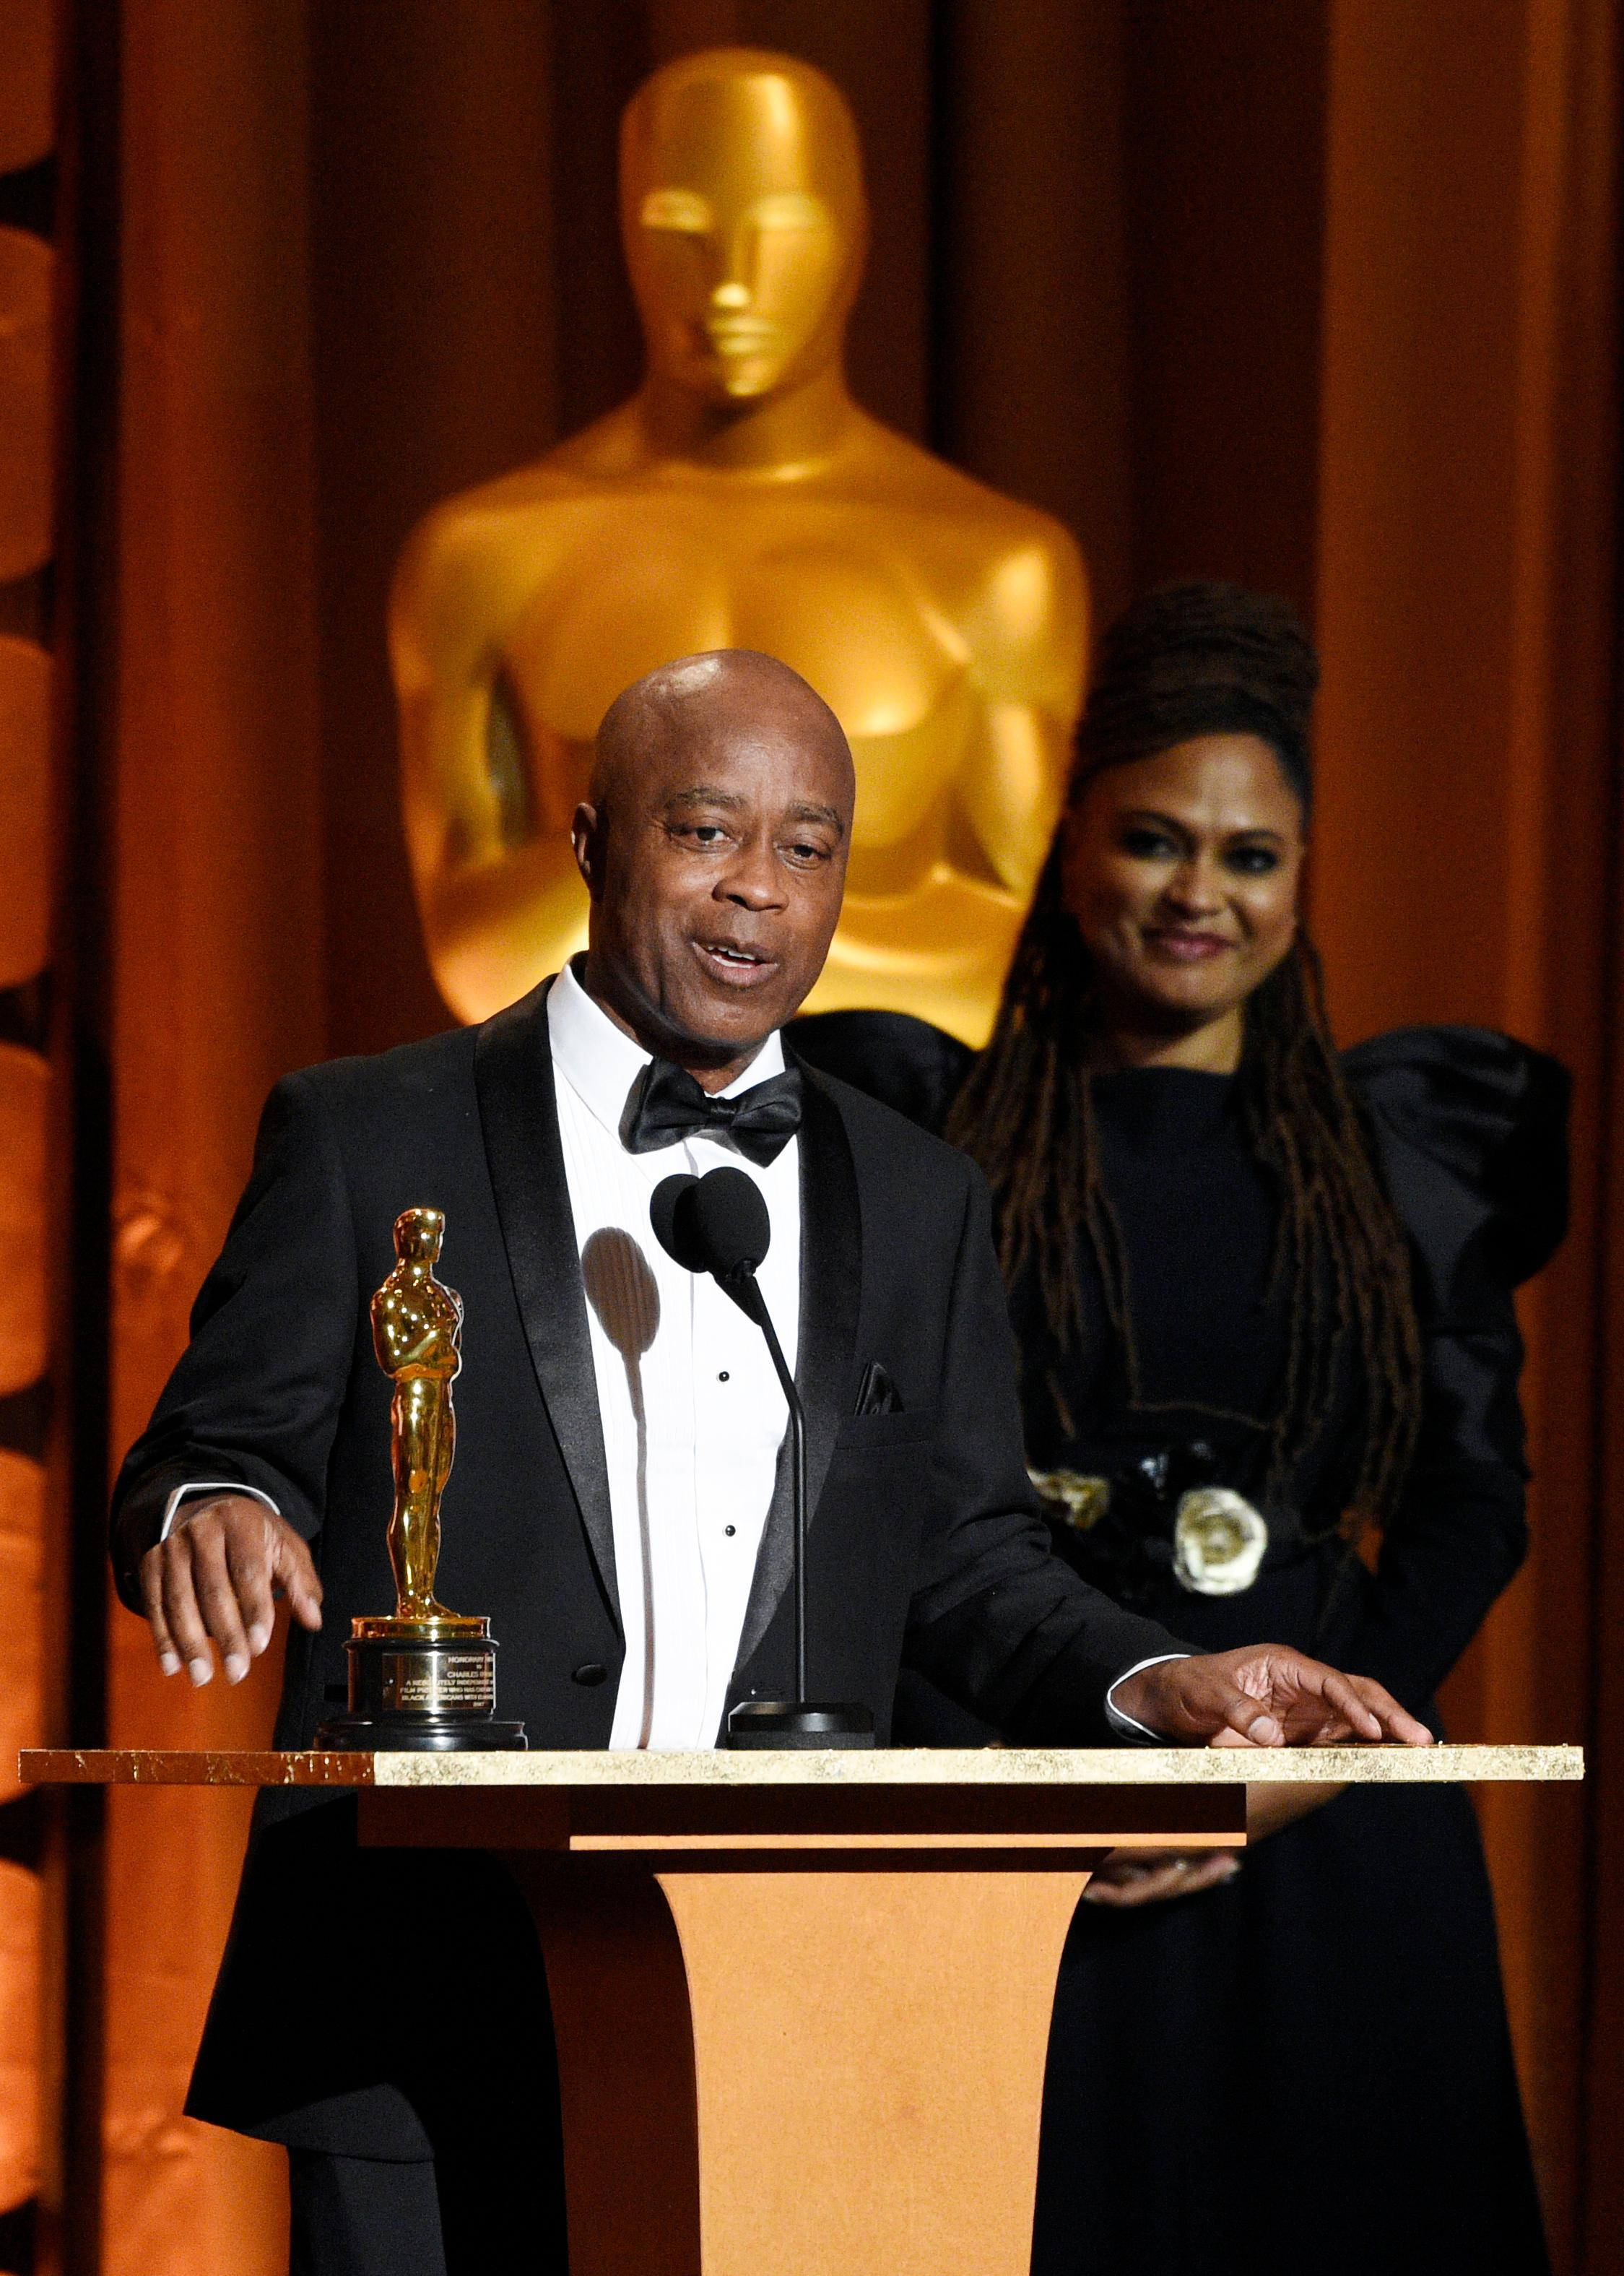 Film director Charles Burnett accepts an honorary Oscar as presenter Ava DuVernay looks on at the 2017 Governors Awards at The Ray Dolby Ballroom on Saturday, Nov. 11, 2017, in Los Angeles. (Photo by Chris Pizzello/Invision/AP)